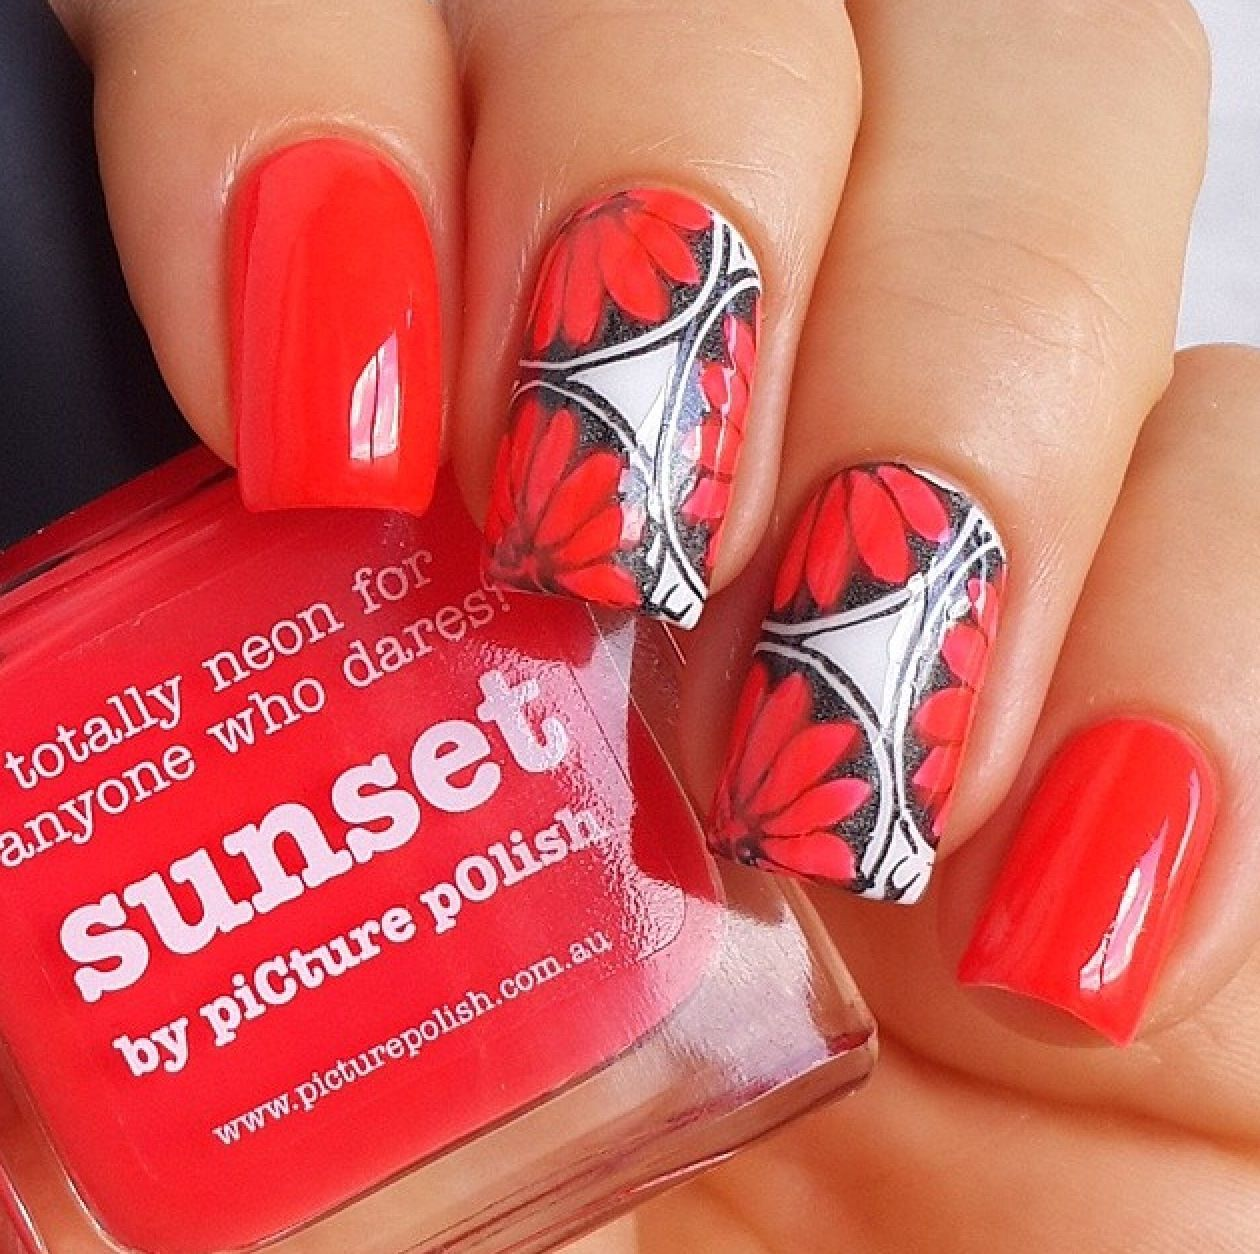 piCture pOlish DAISIES = 'Sunset' nails by Solo Nails!  Shop on-line: www.picturepolish.com.au